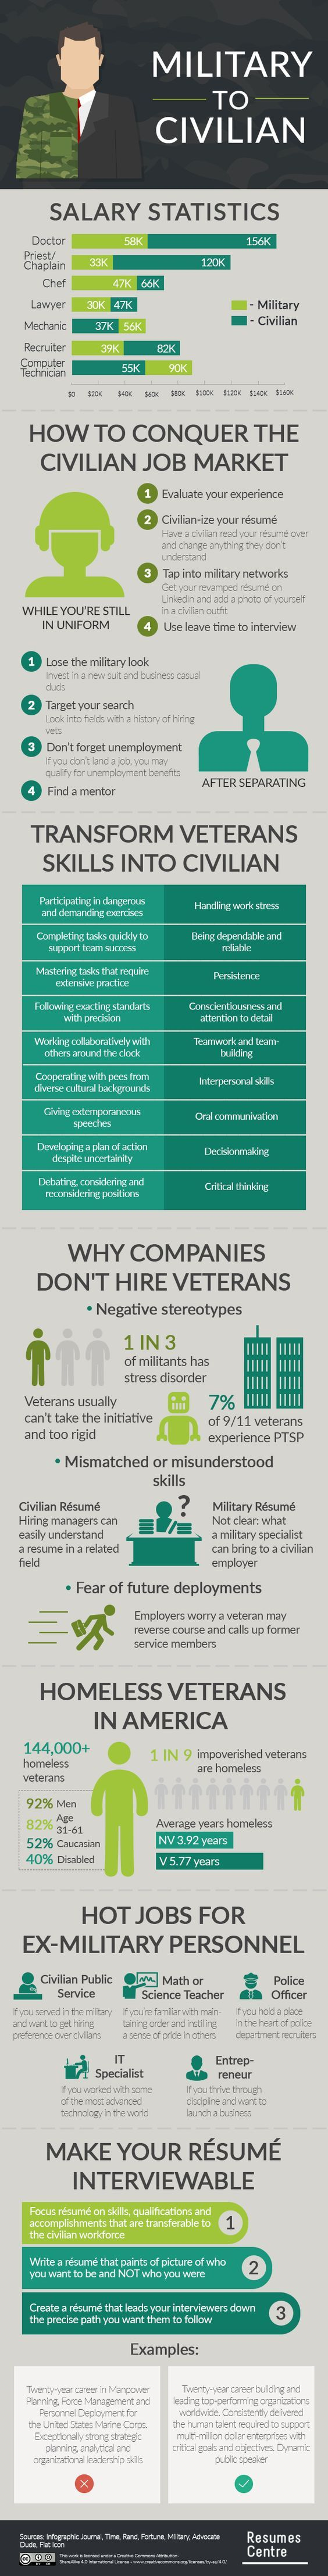 Infographic Converting your Military Resume for Civilian